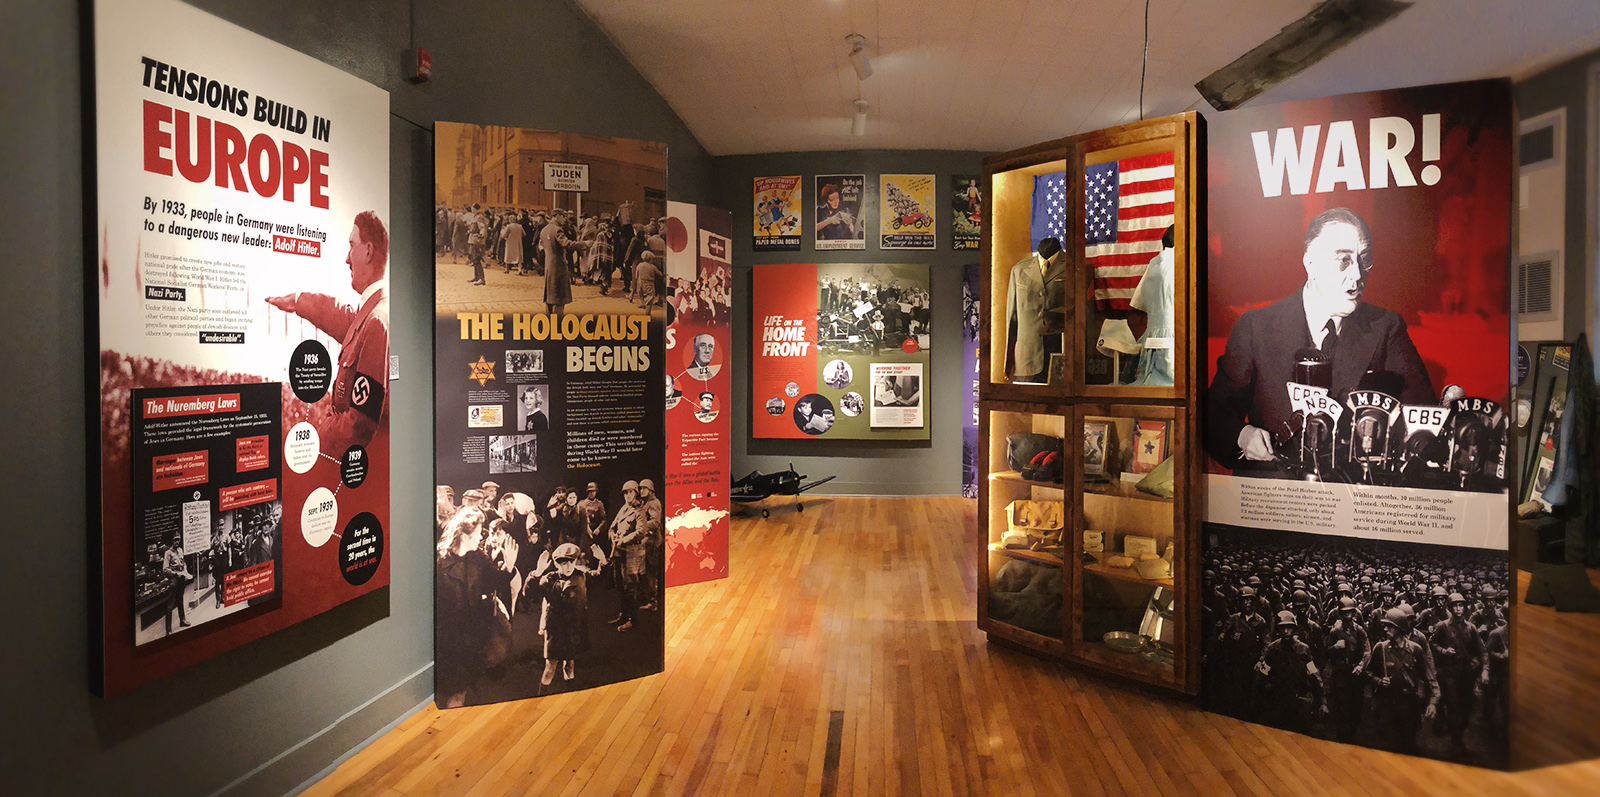 wwii-exhibit-war-room-pano-1.jpg